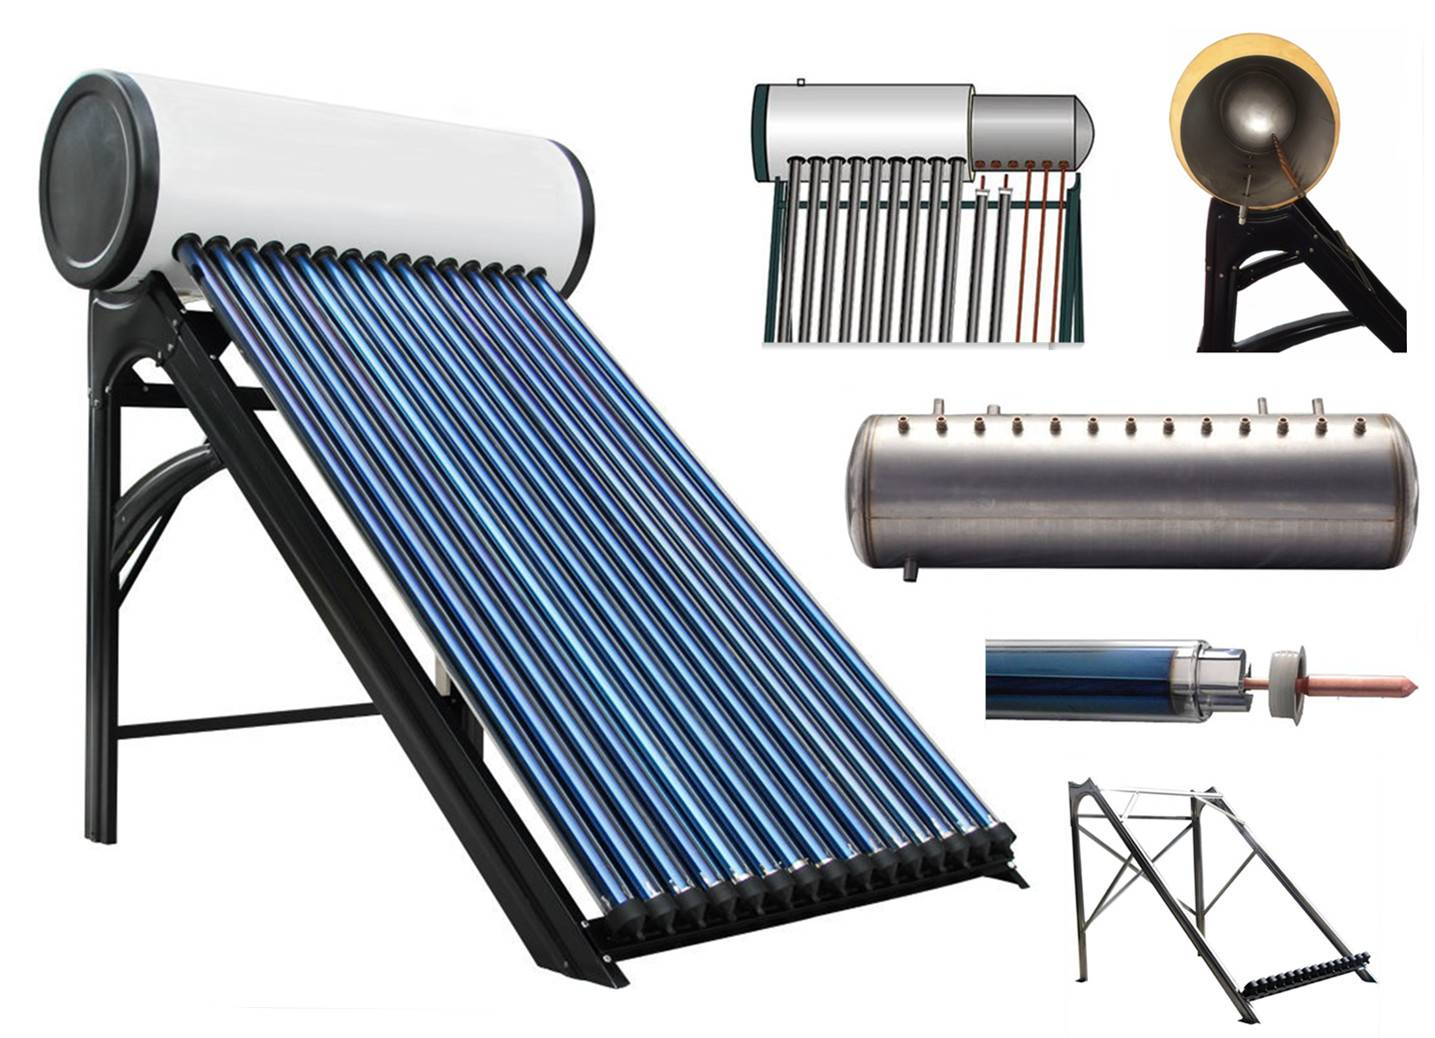 high pressure/pressurized solar water heater system solar collector solar geyser